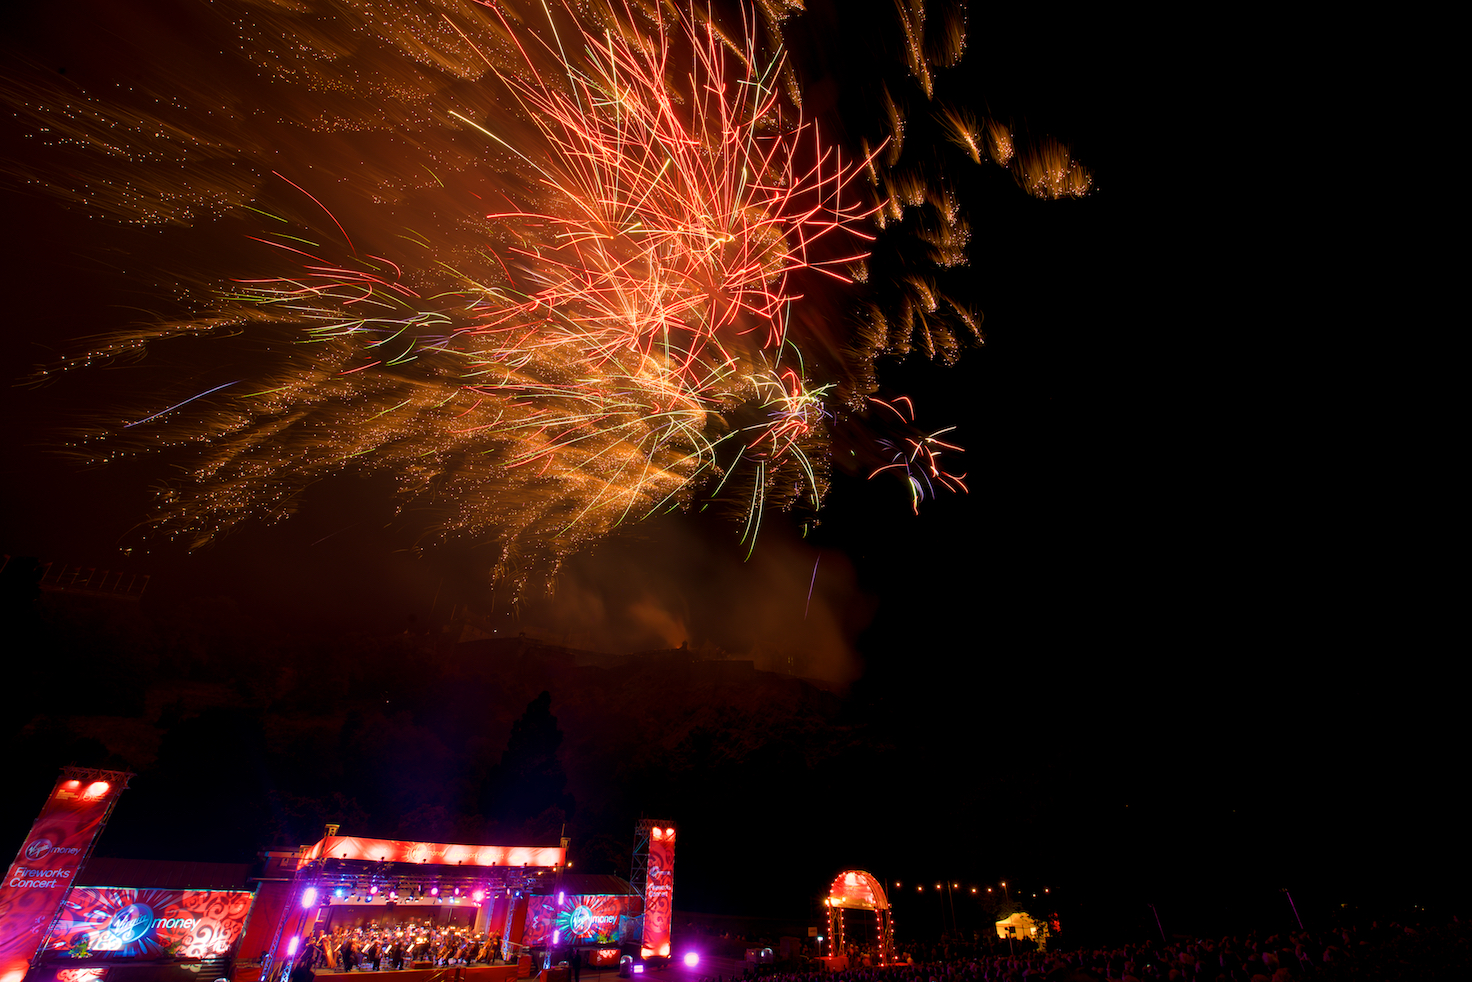 virgin-money-fireworks-concert-edinburgh-castleedinburgh-international-festival-edinburgh-castle-29th-august-2016-9